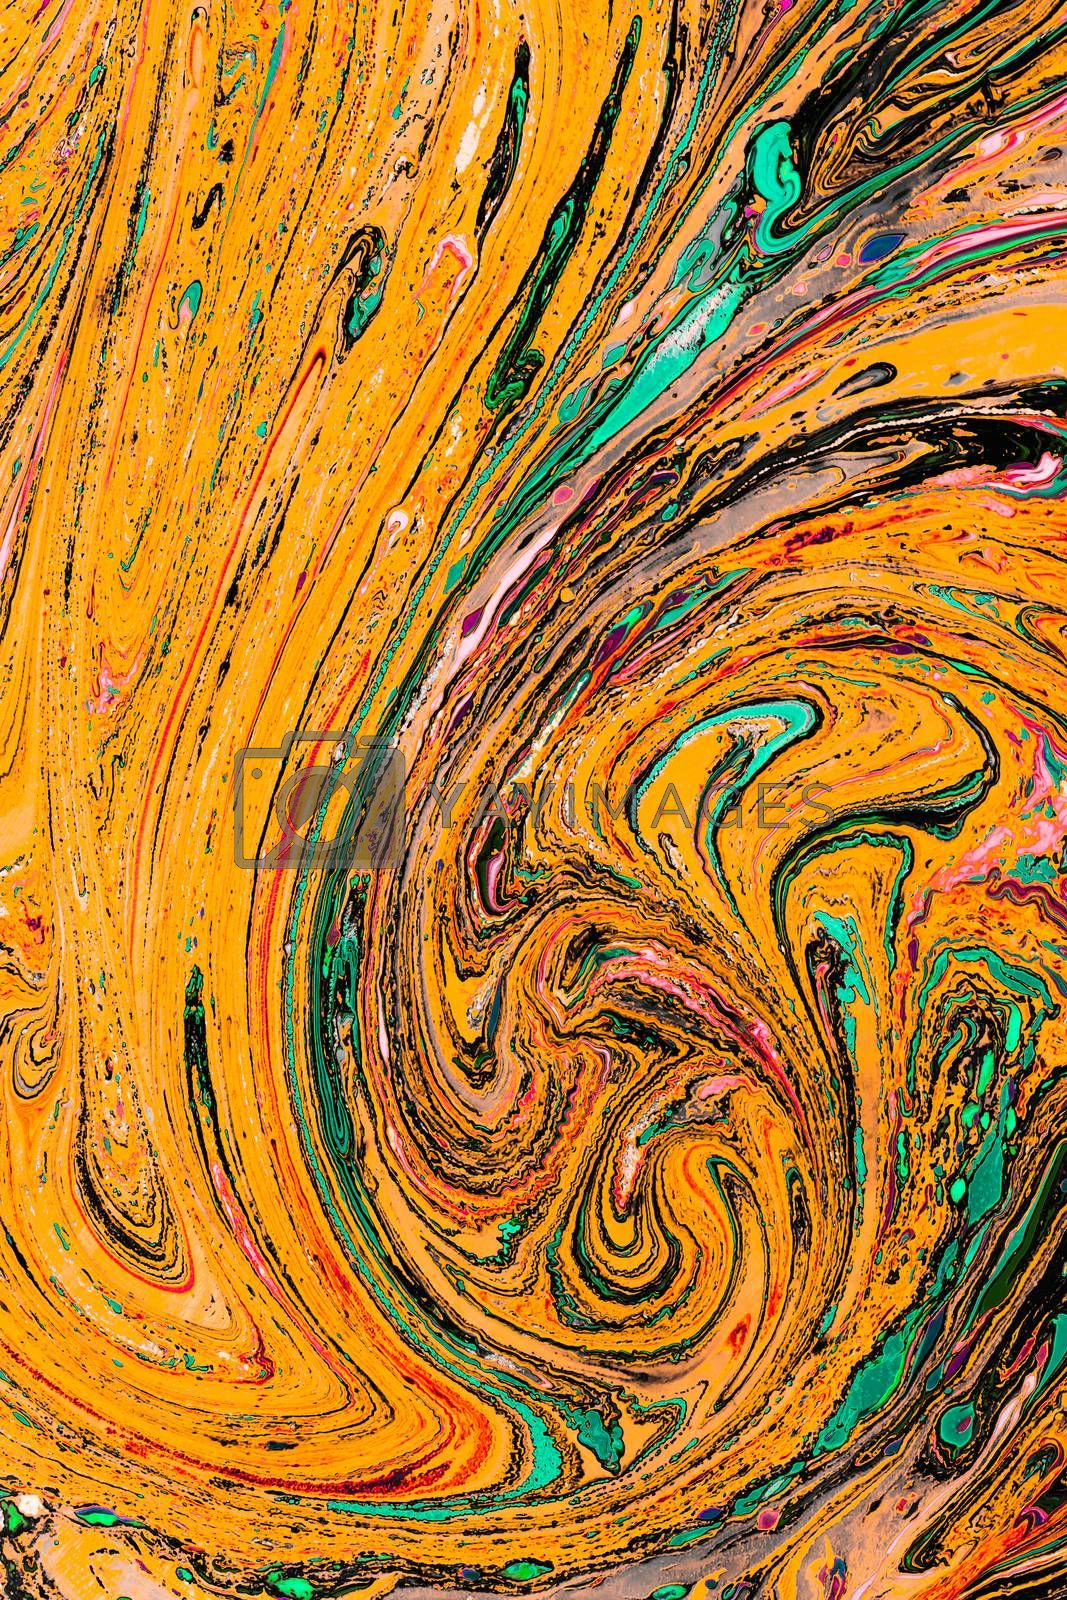 Traditional Ottoman Turkish abstract marbling art patterns as background